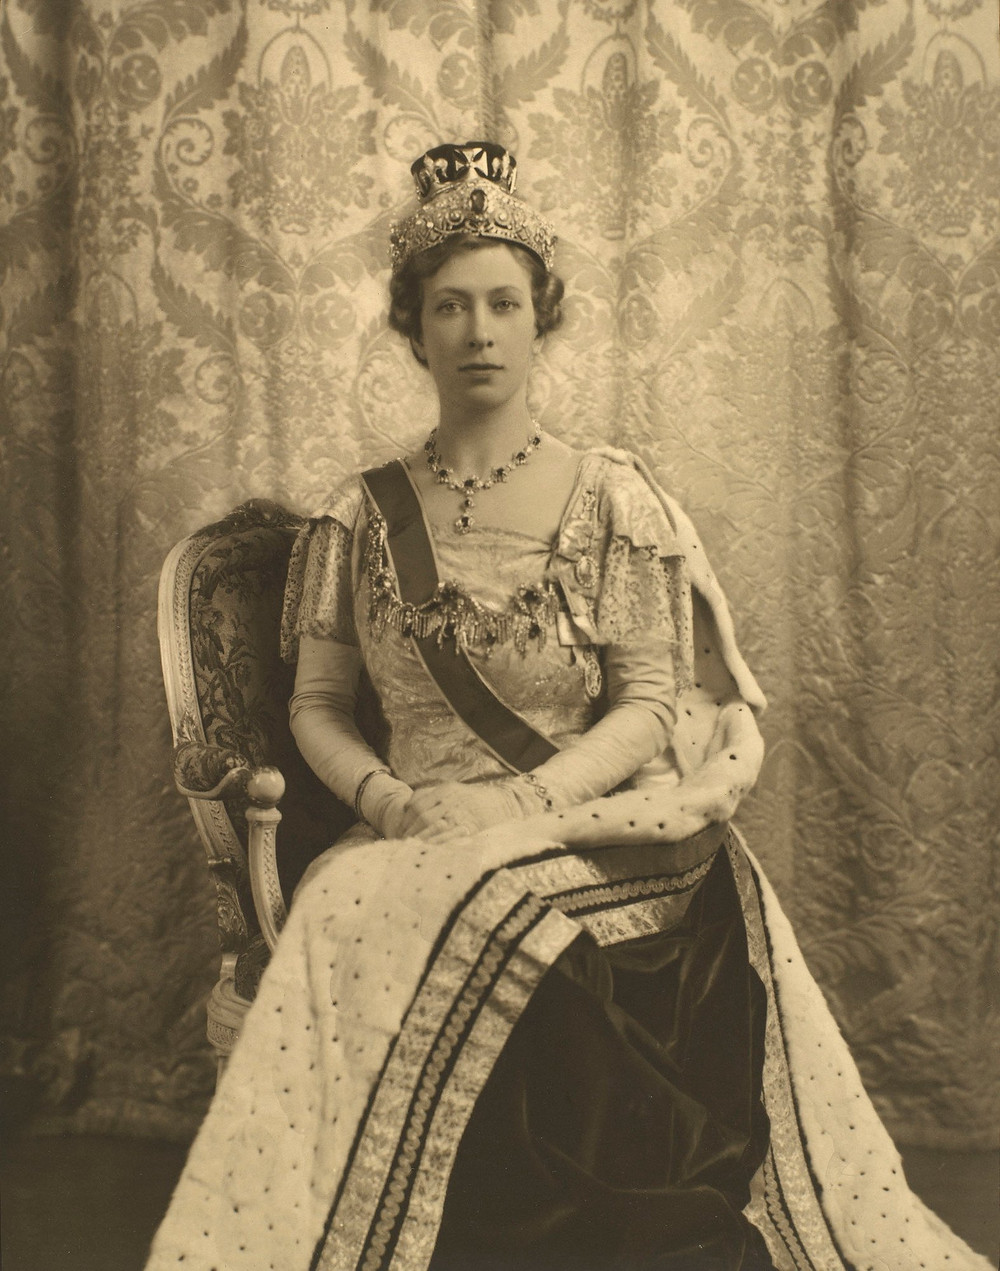 Princess Mary, 1937 - Royal Collection Trust/© Her Majesty Queen Elizabeth II 2021. The coronation of George VI